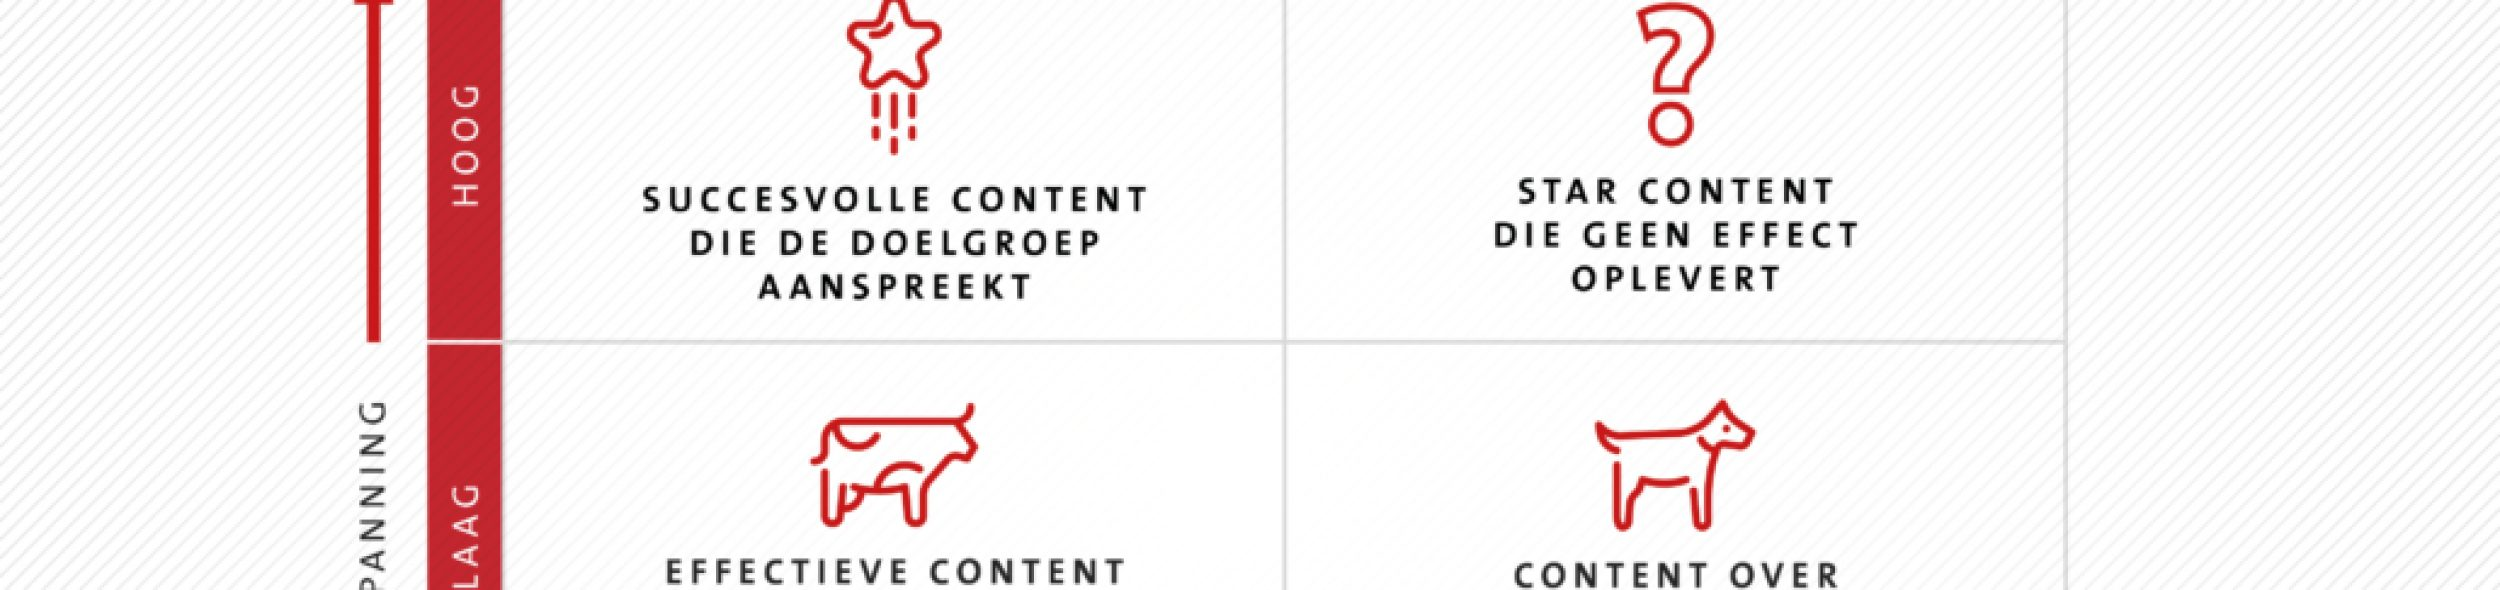 BCG matrix voor contentmarketeers